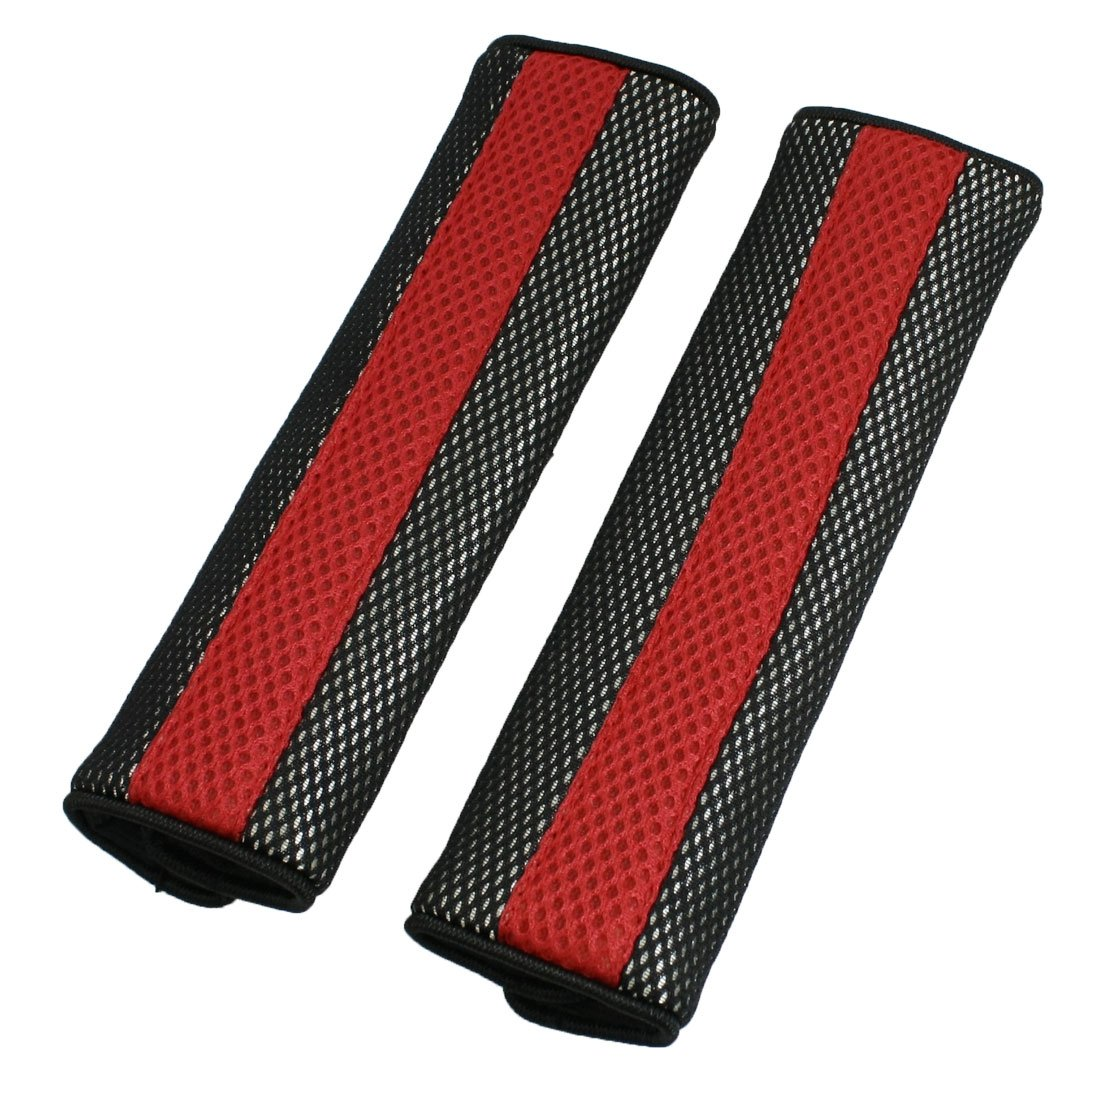 uxcell Motor Detachable Fastener Red Black Seatbelt Cover Pad Pair a13022600ux0380